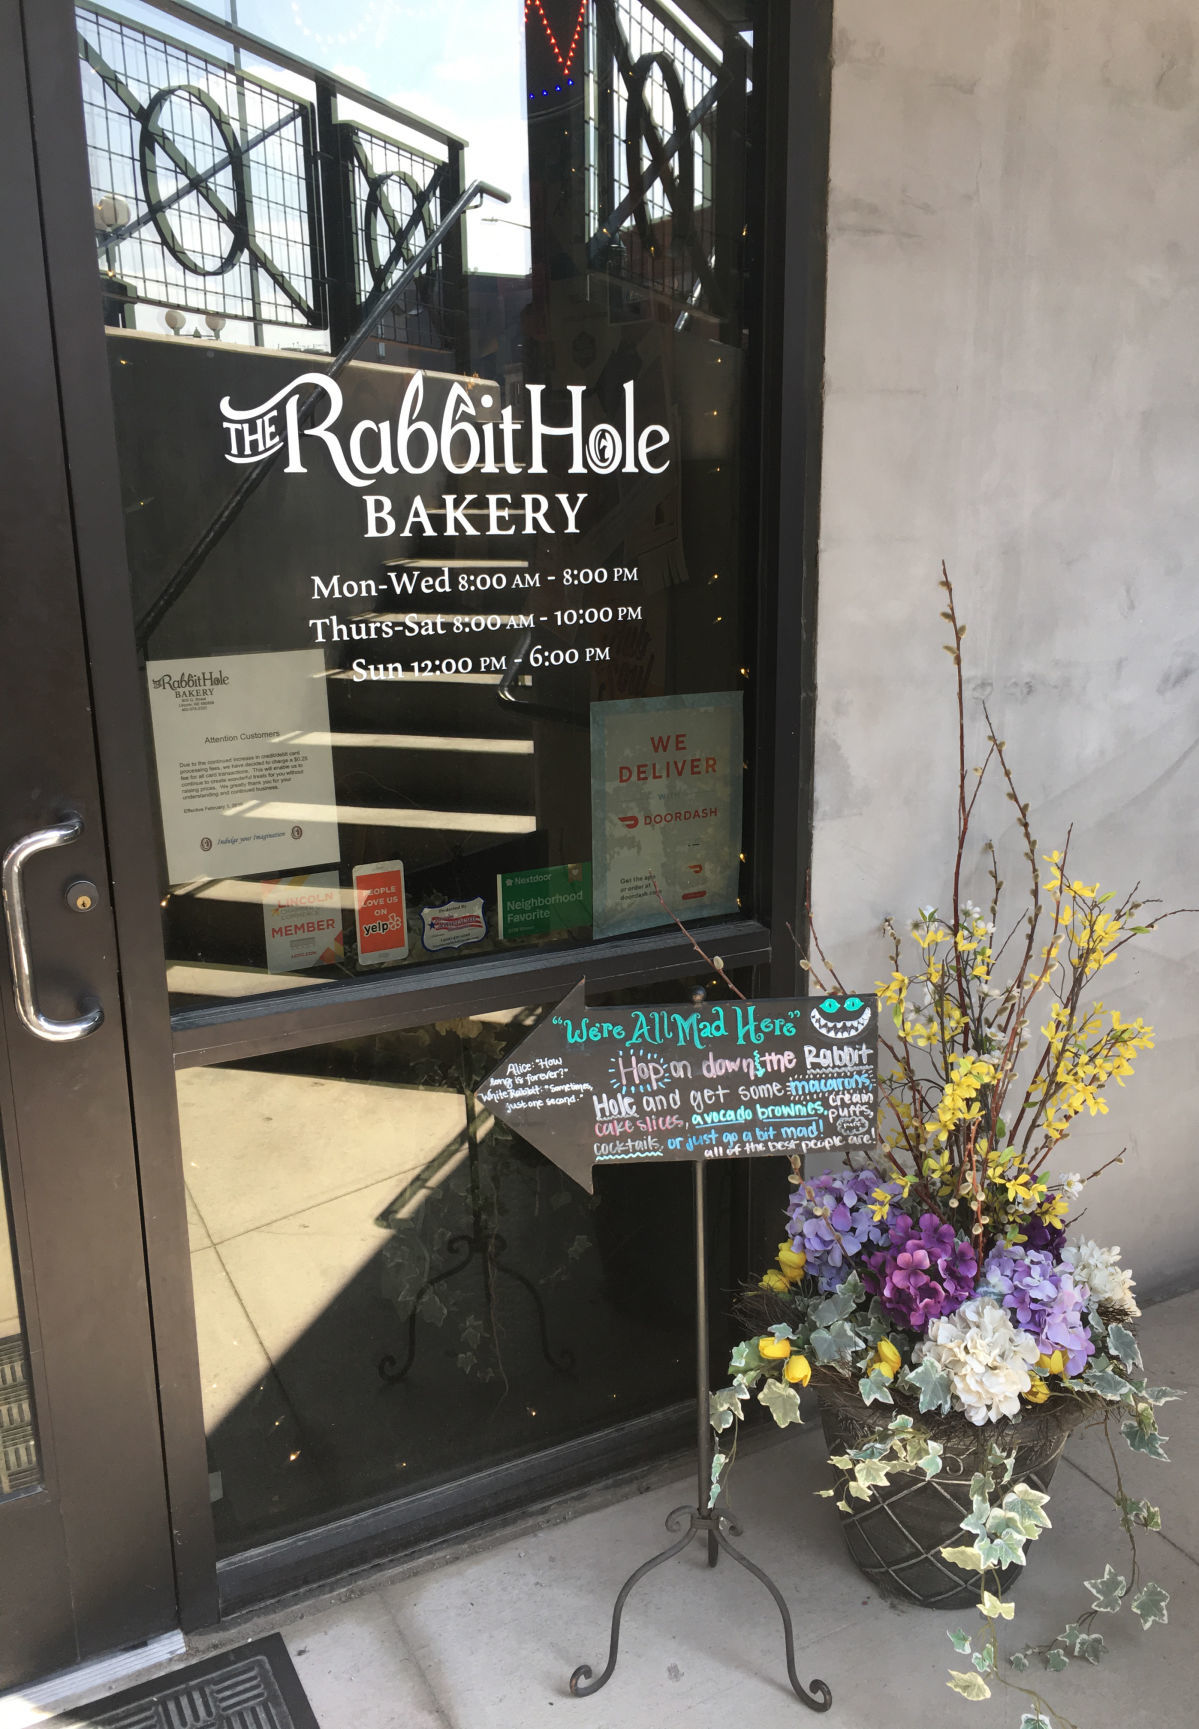 Rabbit Hole Bakery located in basement at Eighth and Q